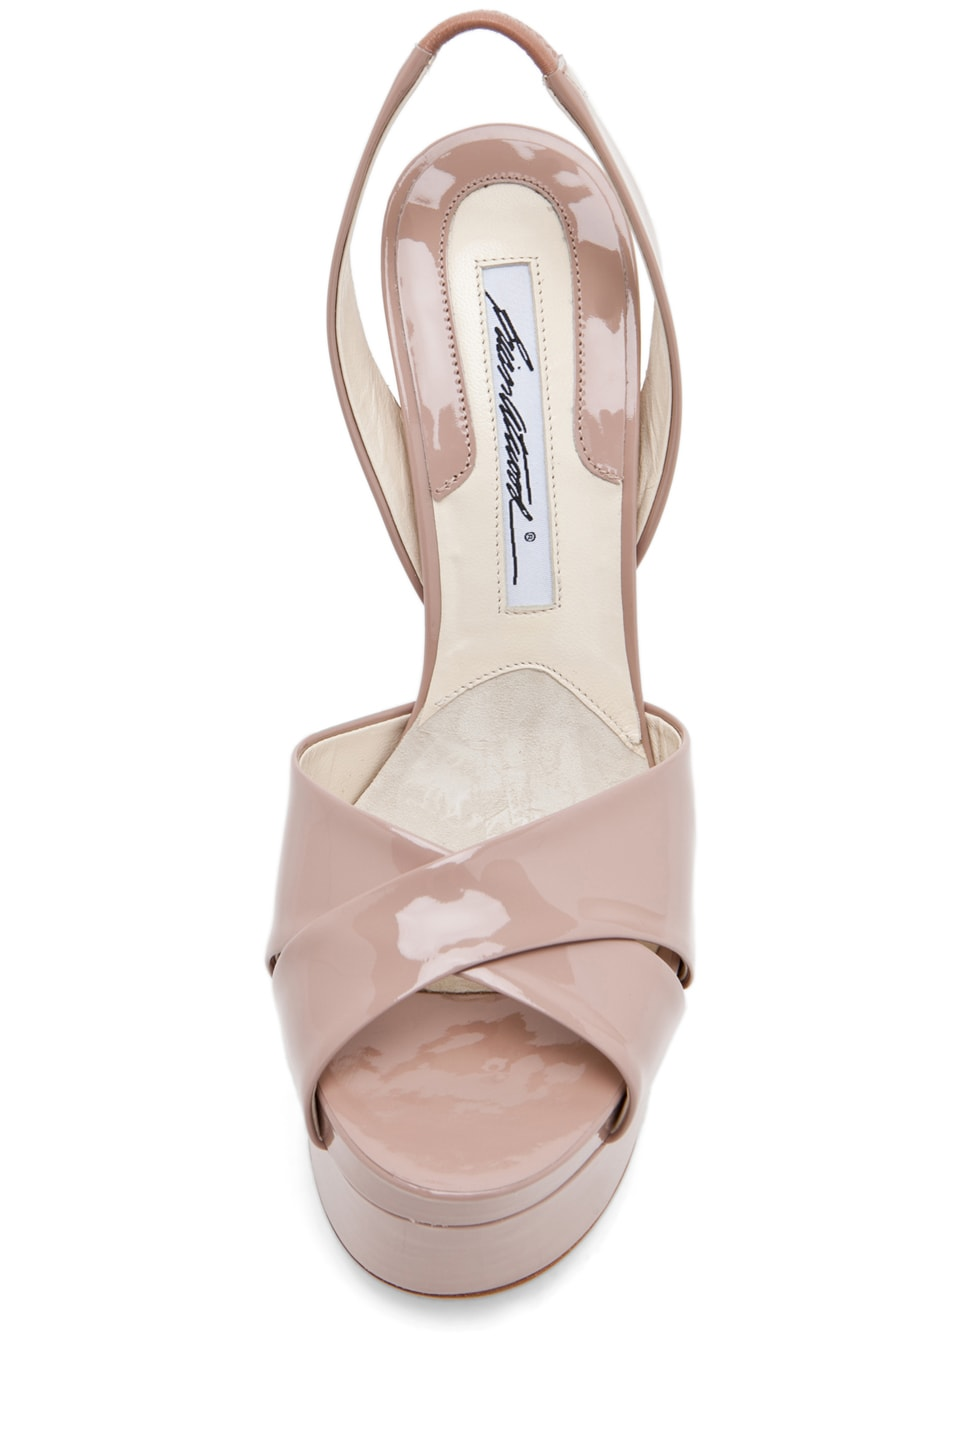 Image 4 of Brian Atwood Manhattan Sandal in Cappuccino Nude